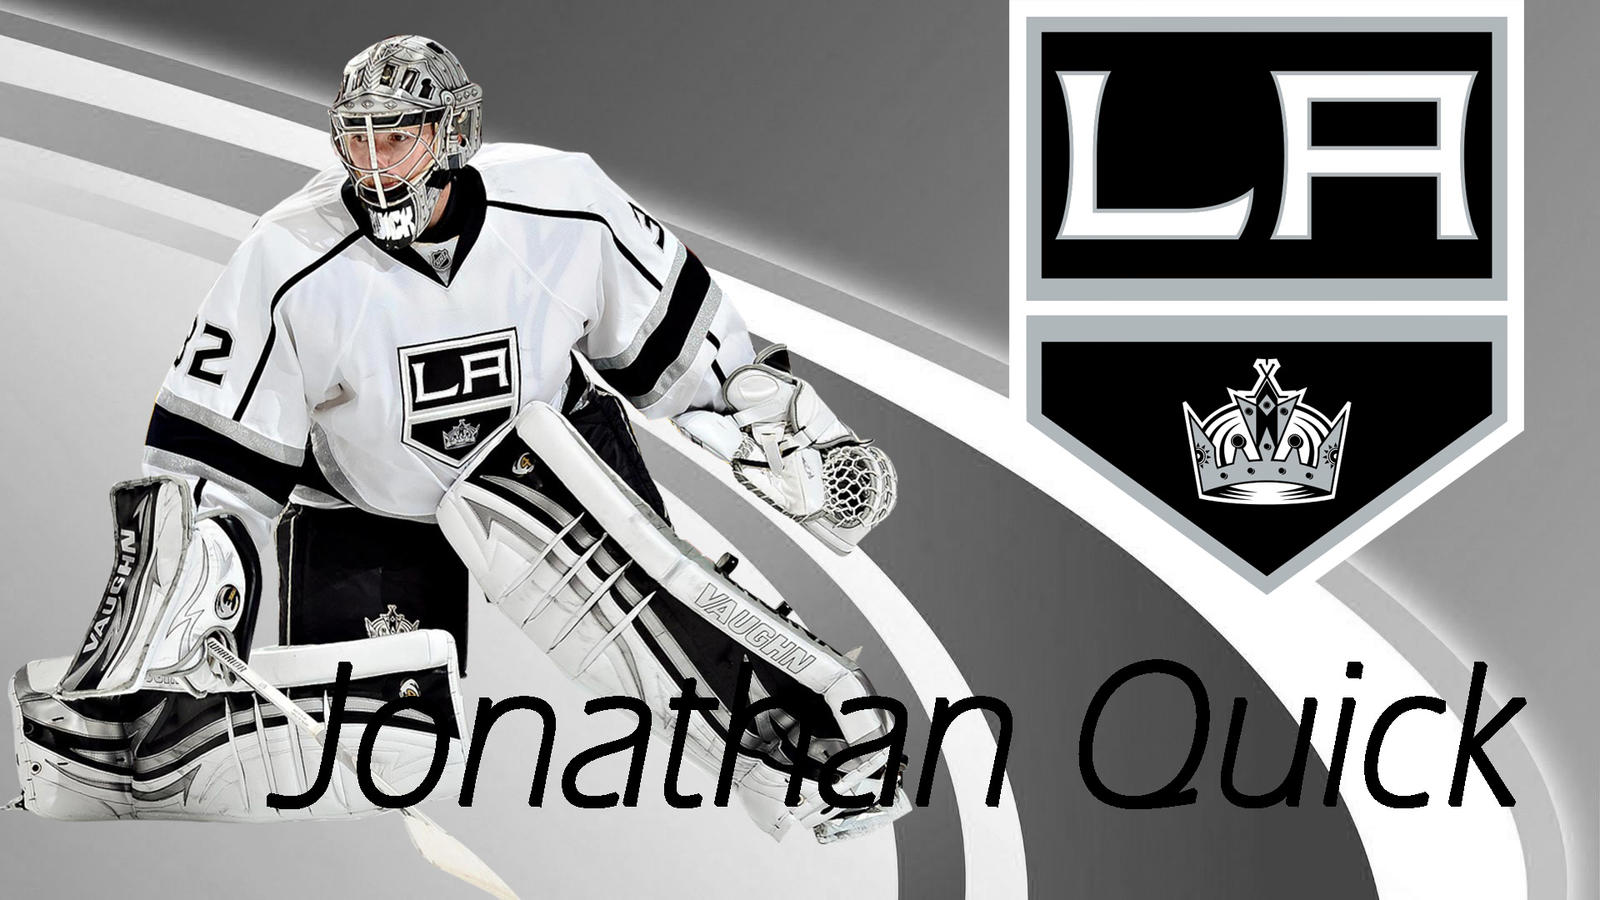 Jonathan Quick Wallpaper 2015 [HD] by xkillerben5798x on ...